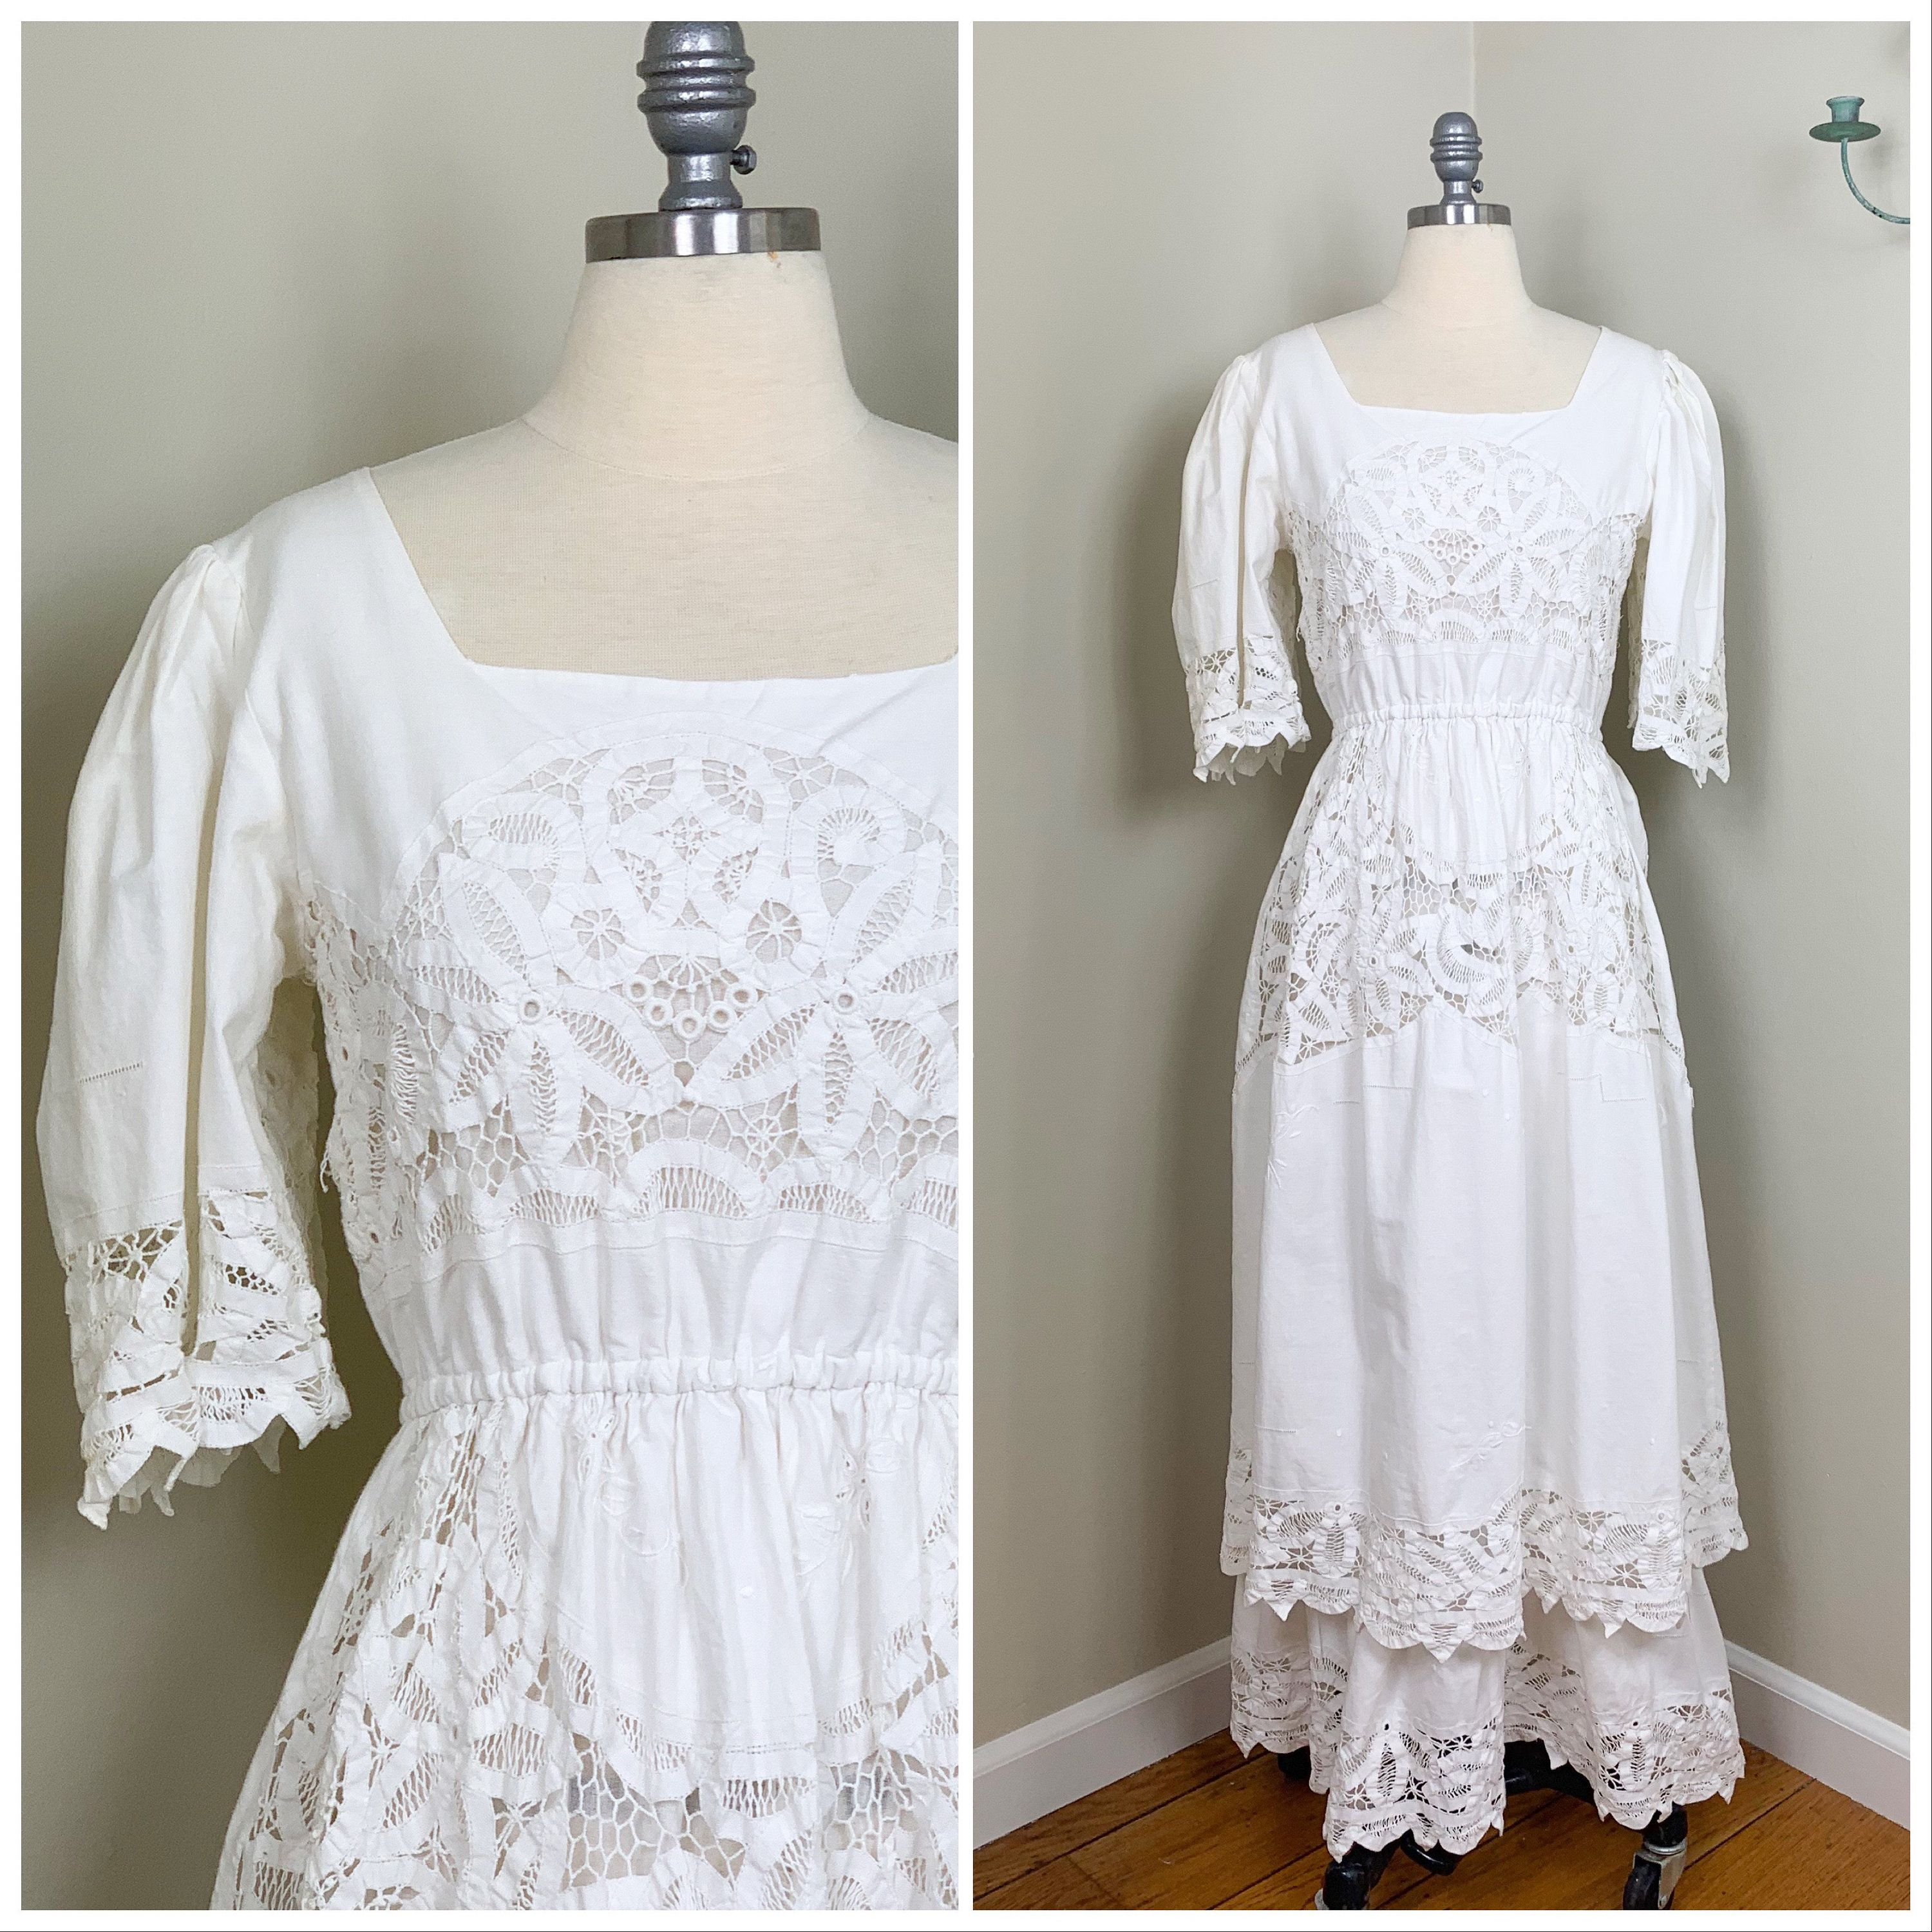 1980s english lace vintage wedding dress tiered cotton